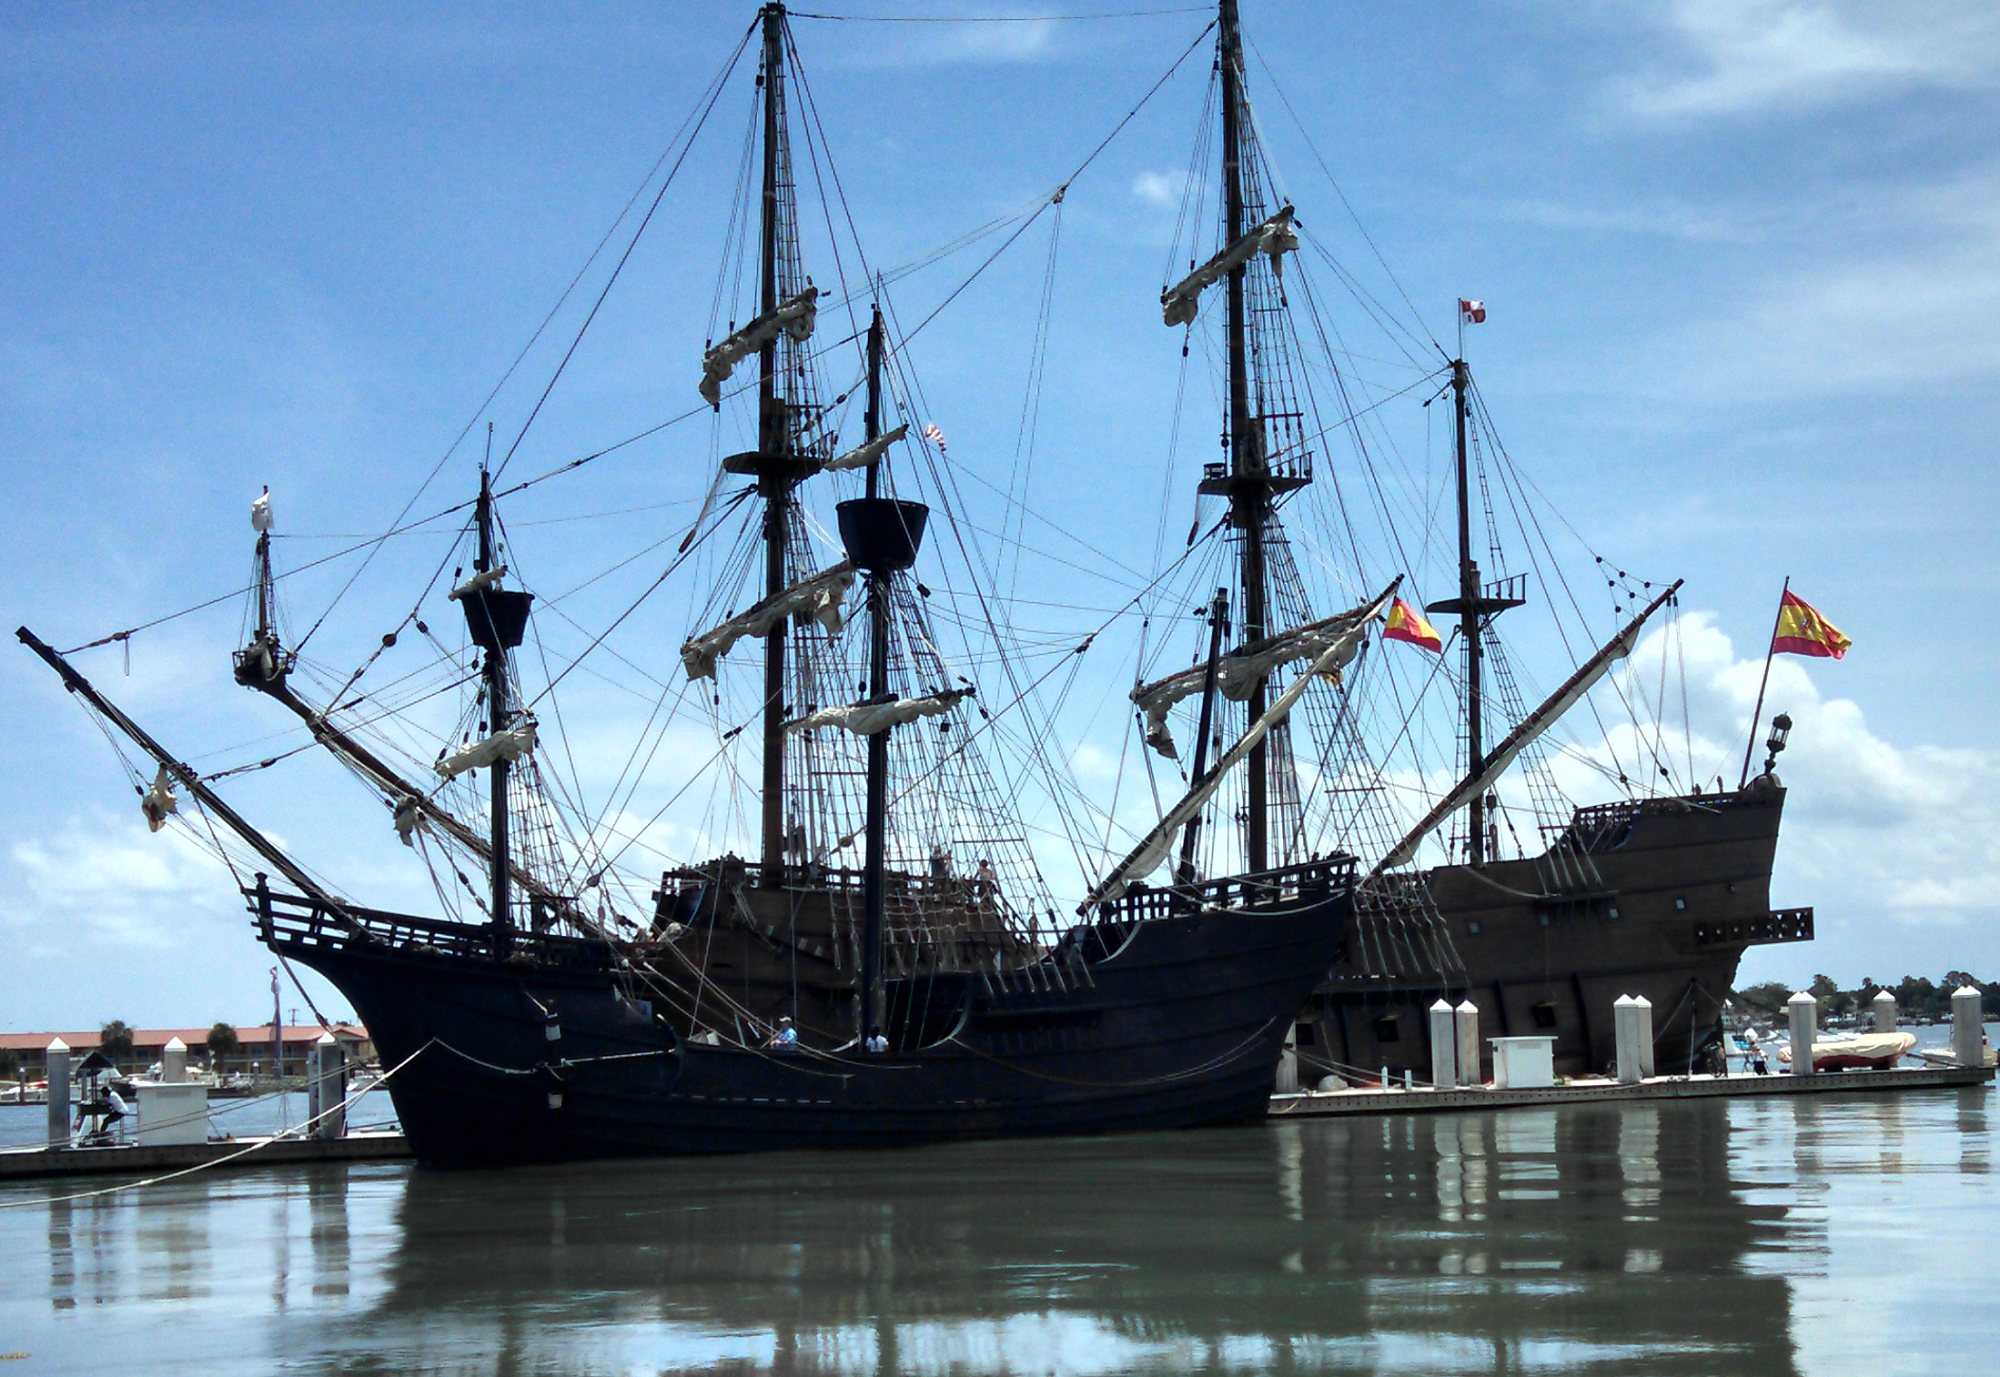 Used Cars St Augustine ... Ship Photos: historic spanish ship docked in st. augustine